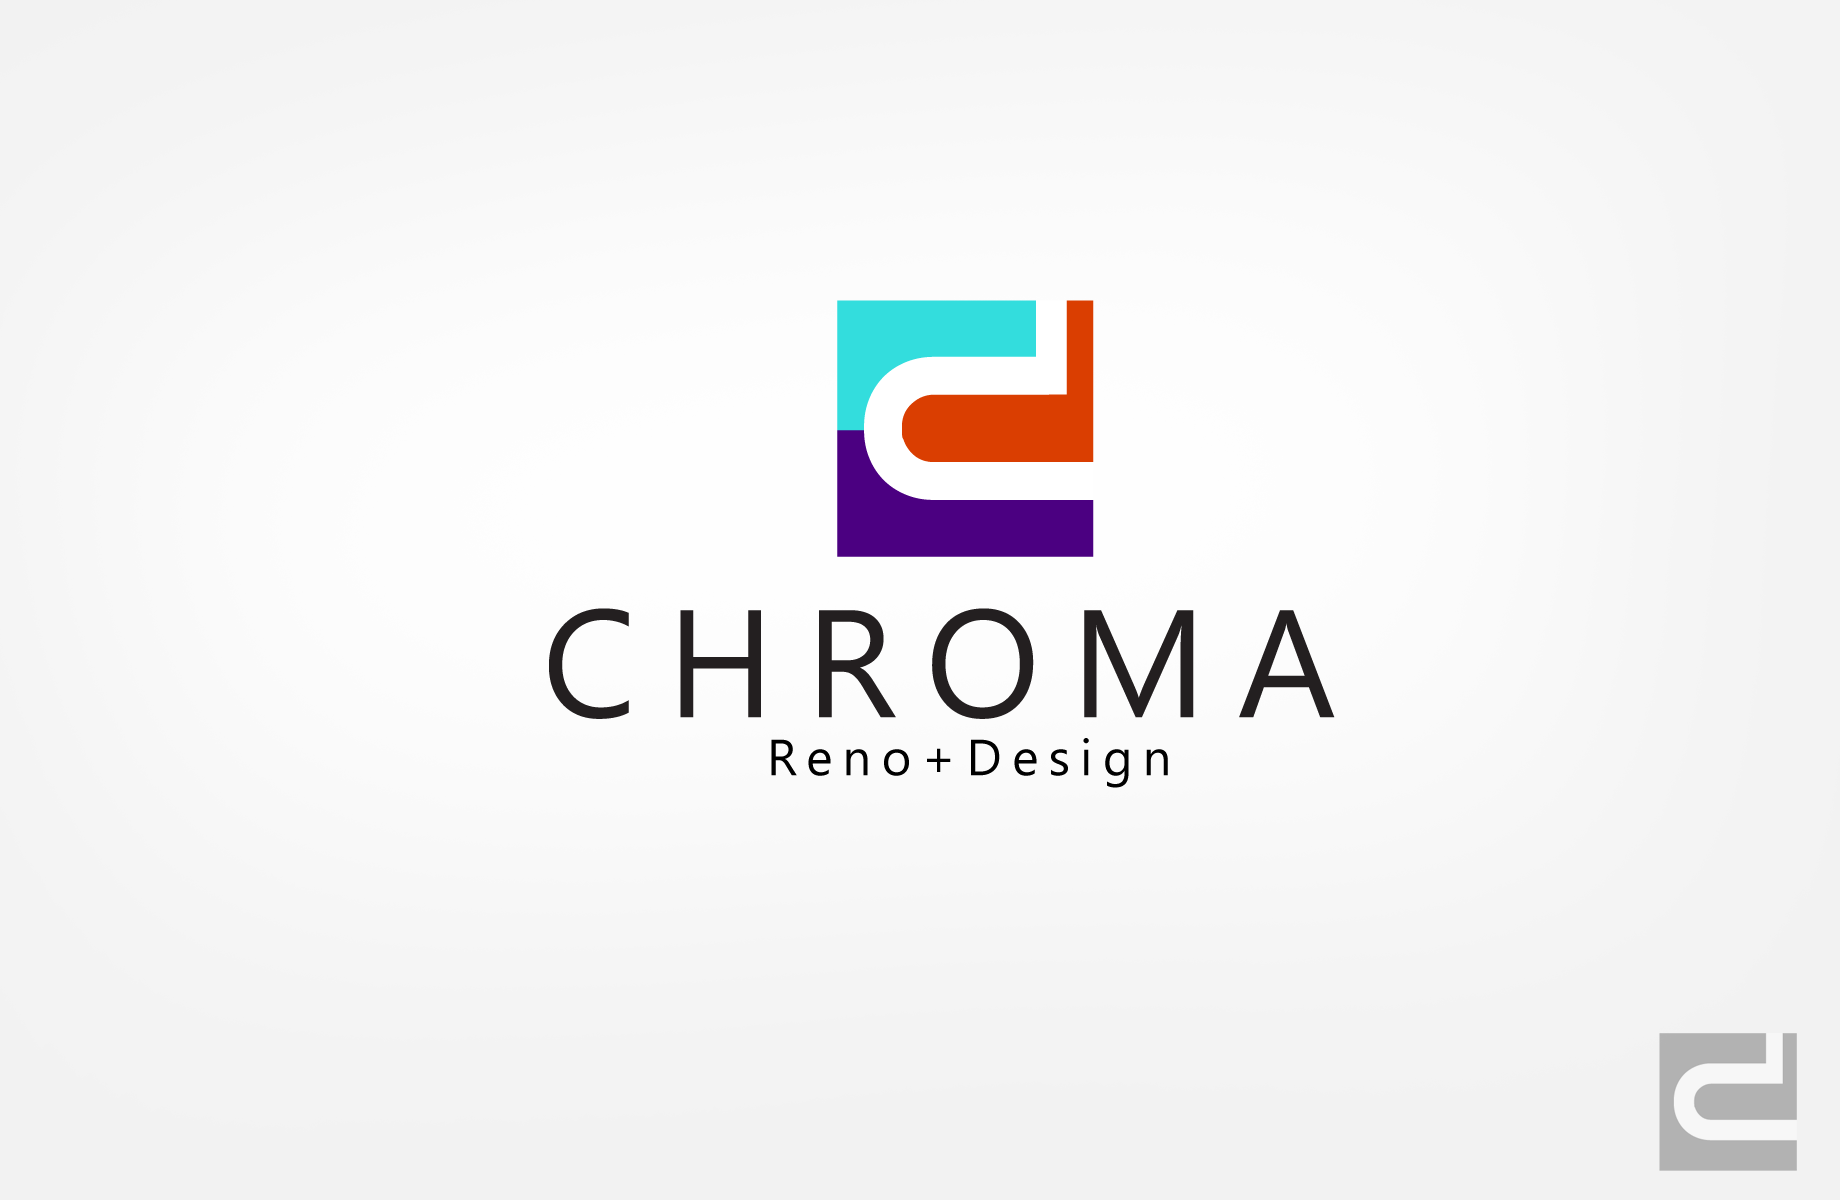 Logo Design by Jan Chua - Entry No. 37 in the Logo Design Contest Inspiring Logo Design for Chroma Reno+Design.